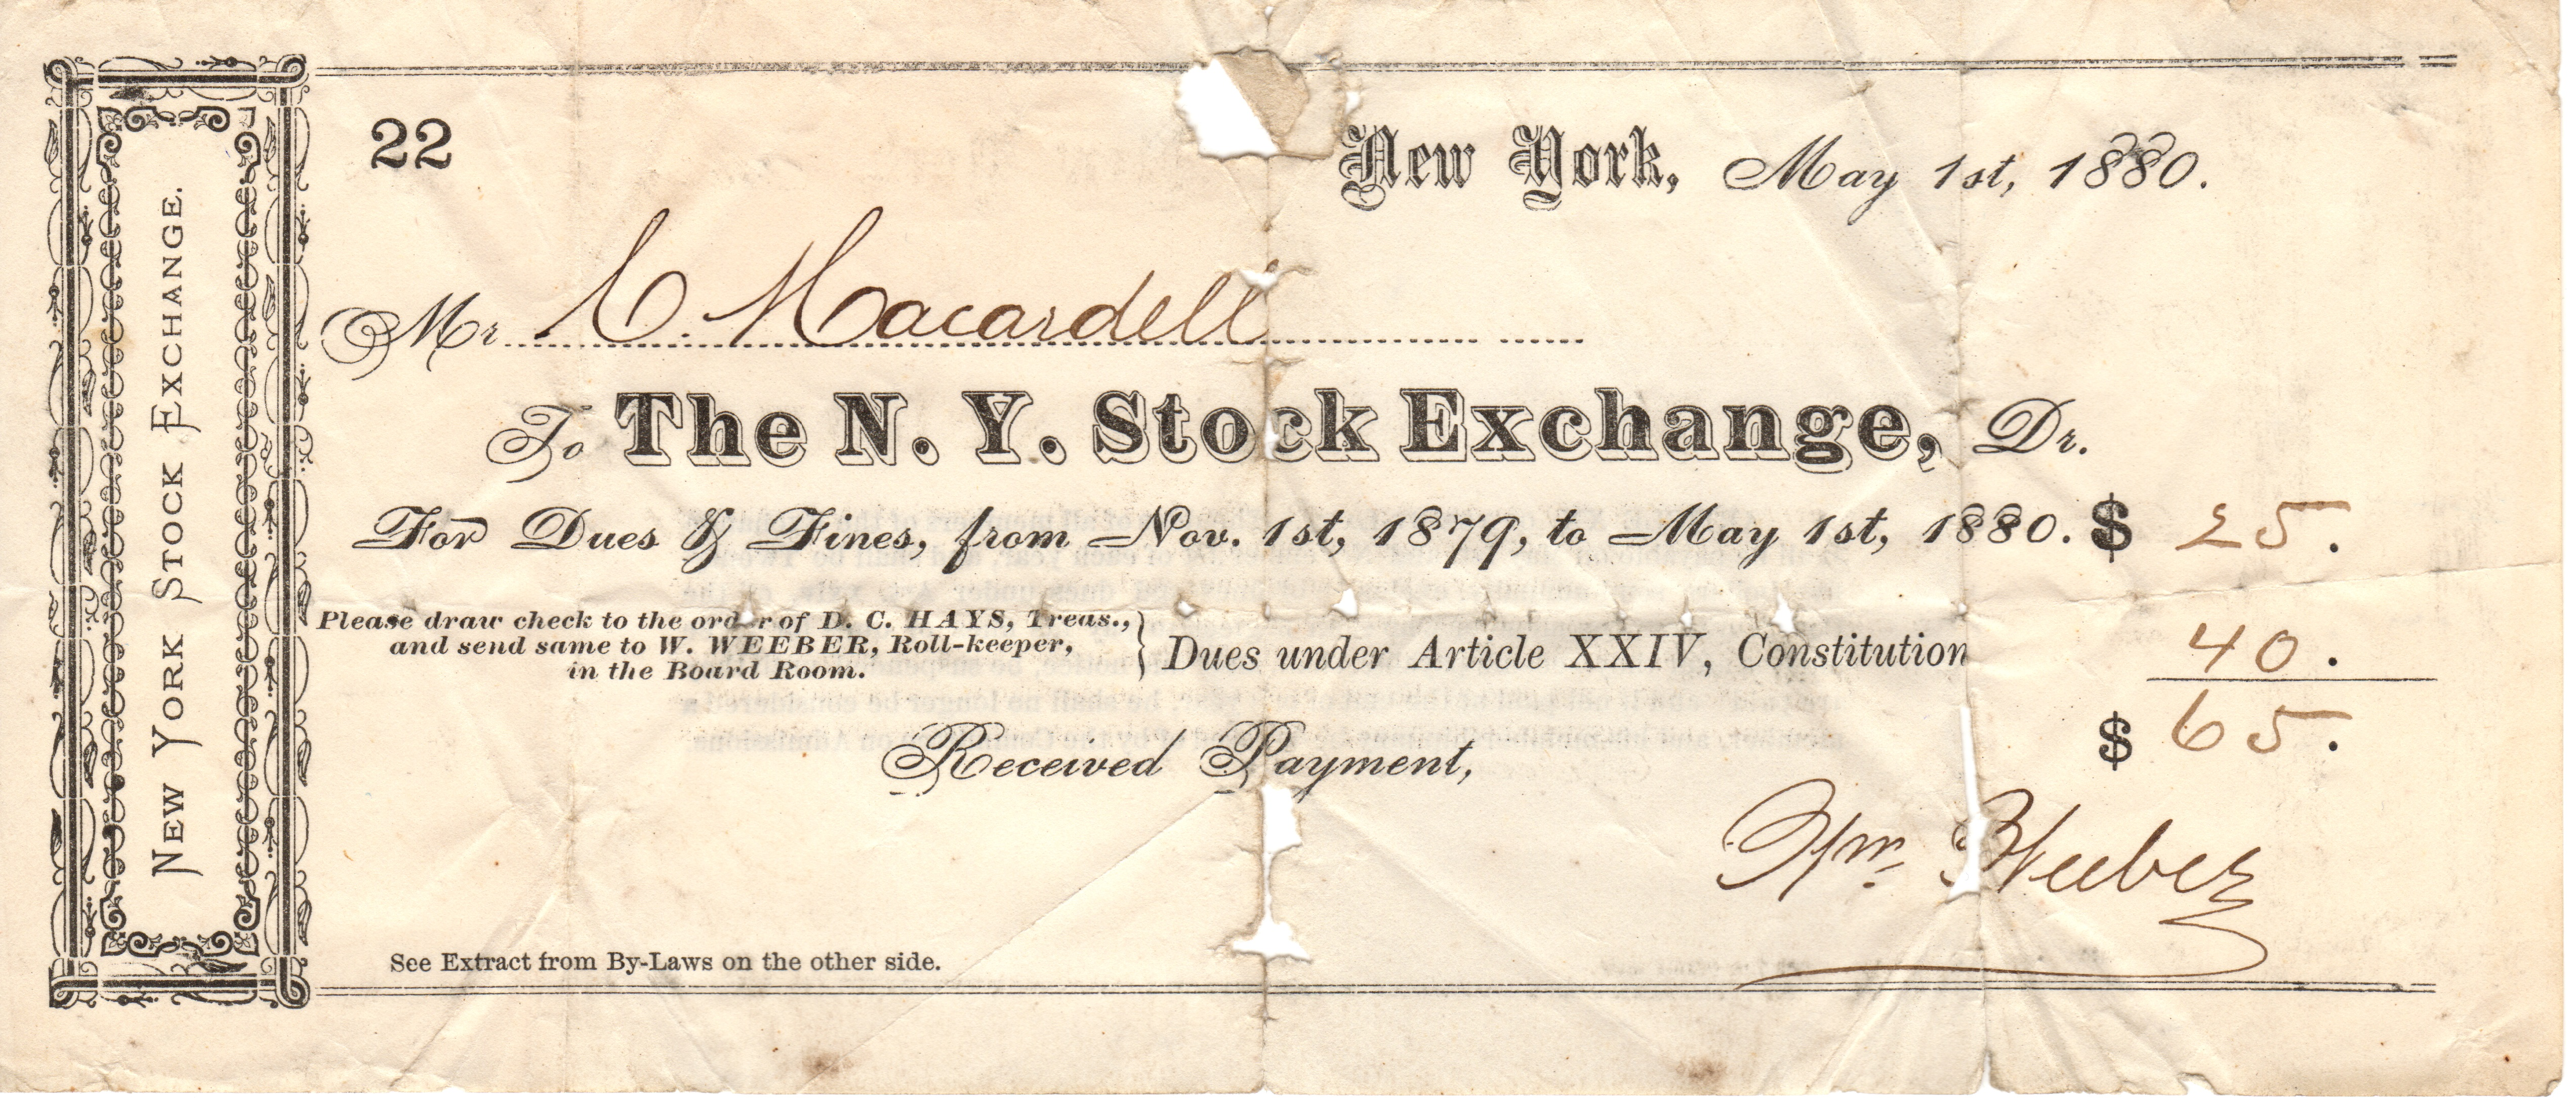 Ej phillips 1830 1904 money economics and salaries cornelius macardell ny stock exchange dues nov 1879 may 1880 dc hays had become treasurer of the nyse in 1866 1betcityfo Choice Image